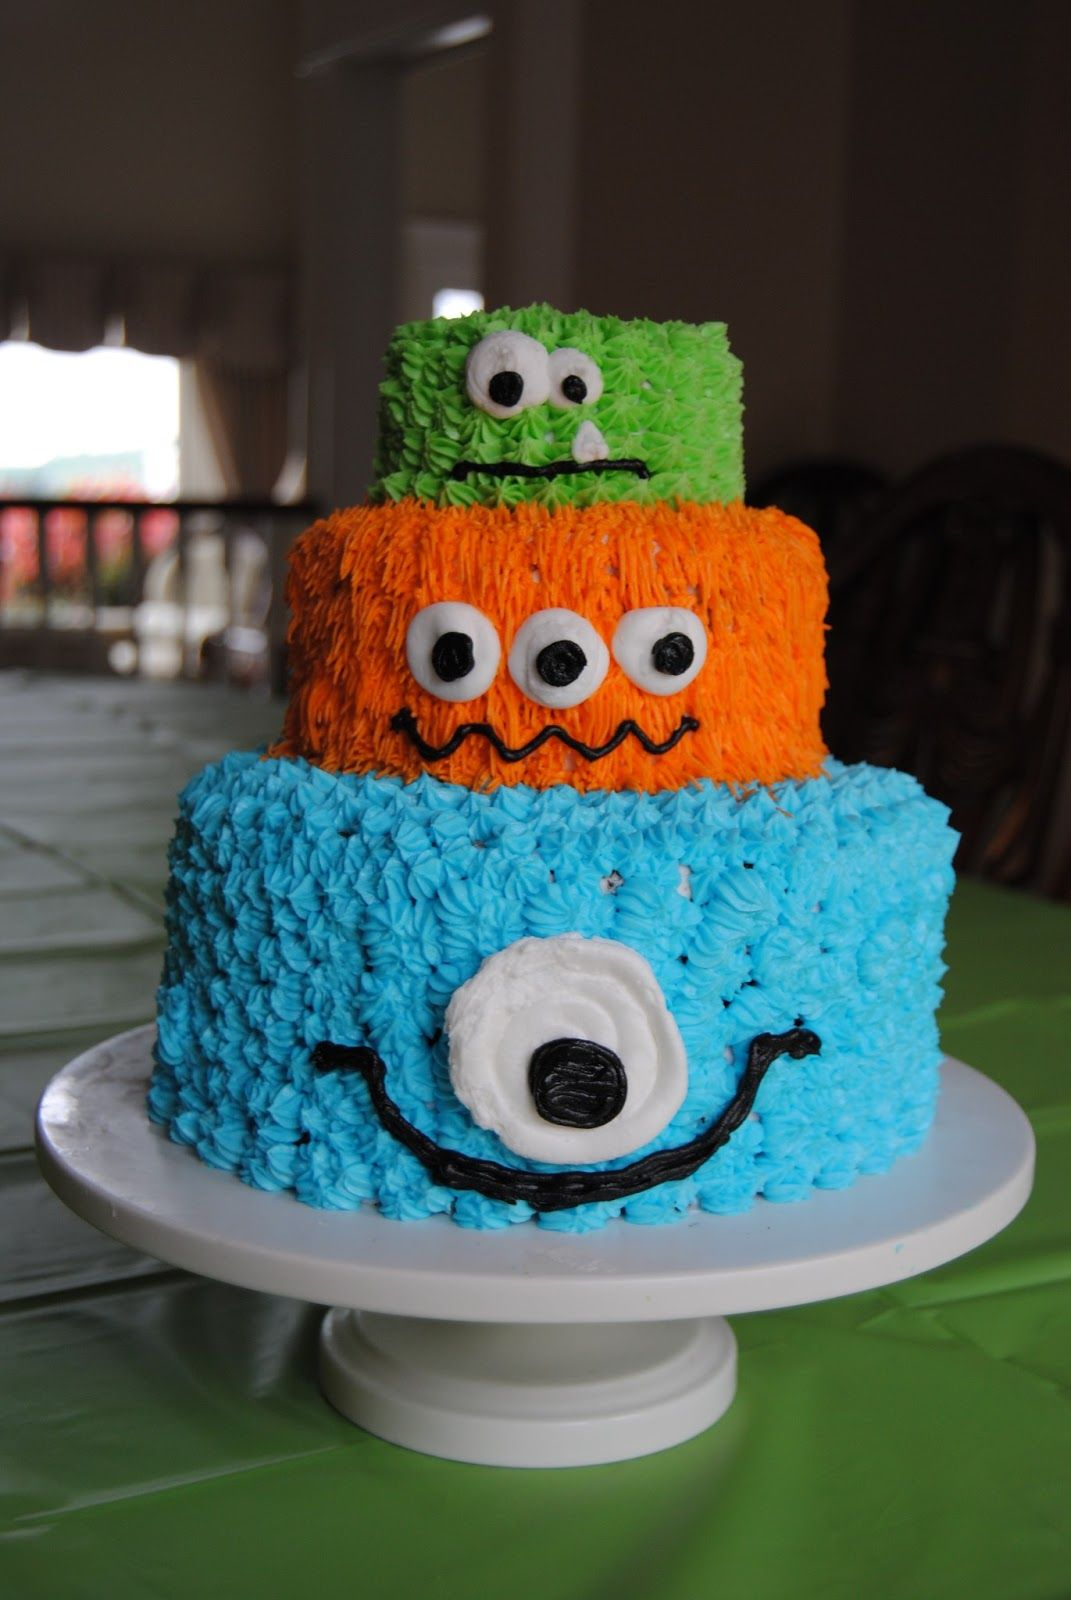 10 do it yourself birthday cakes for little boys birthday cakes 10 do it yourself birthday cakes for little boys solutioingenieria Image collections